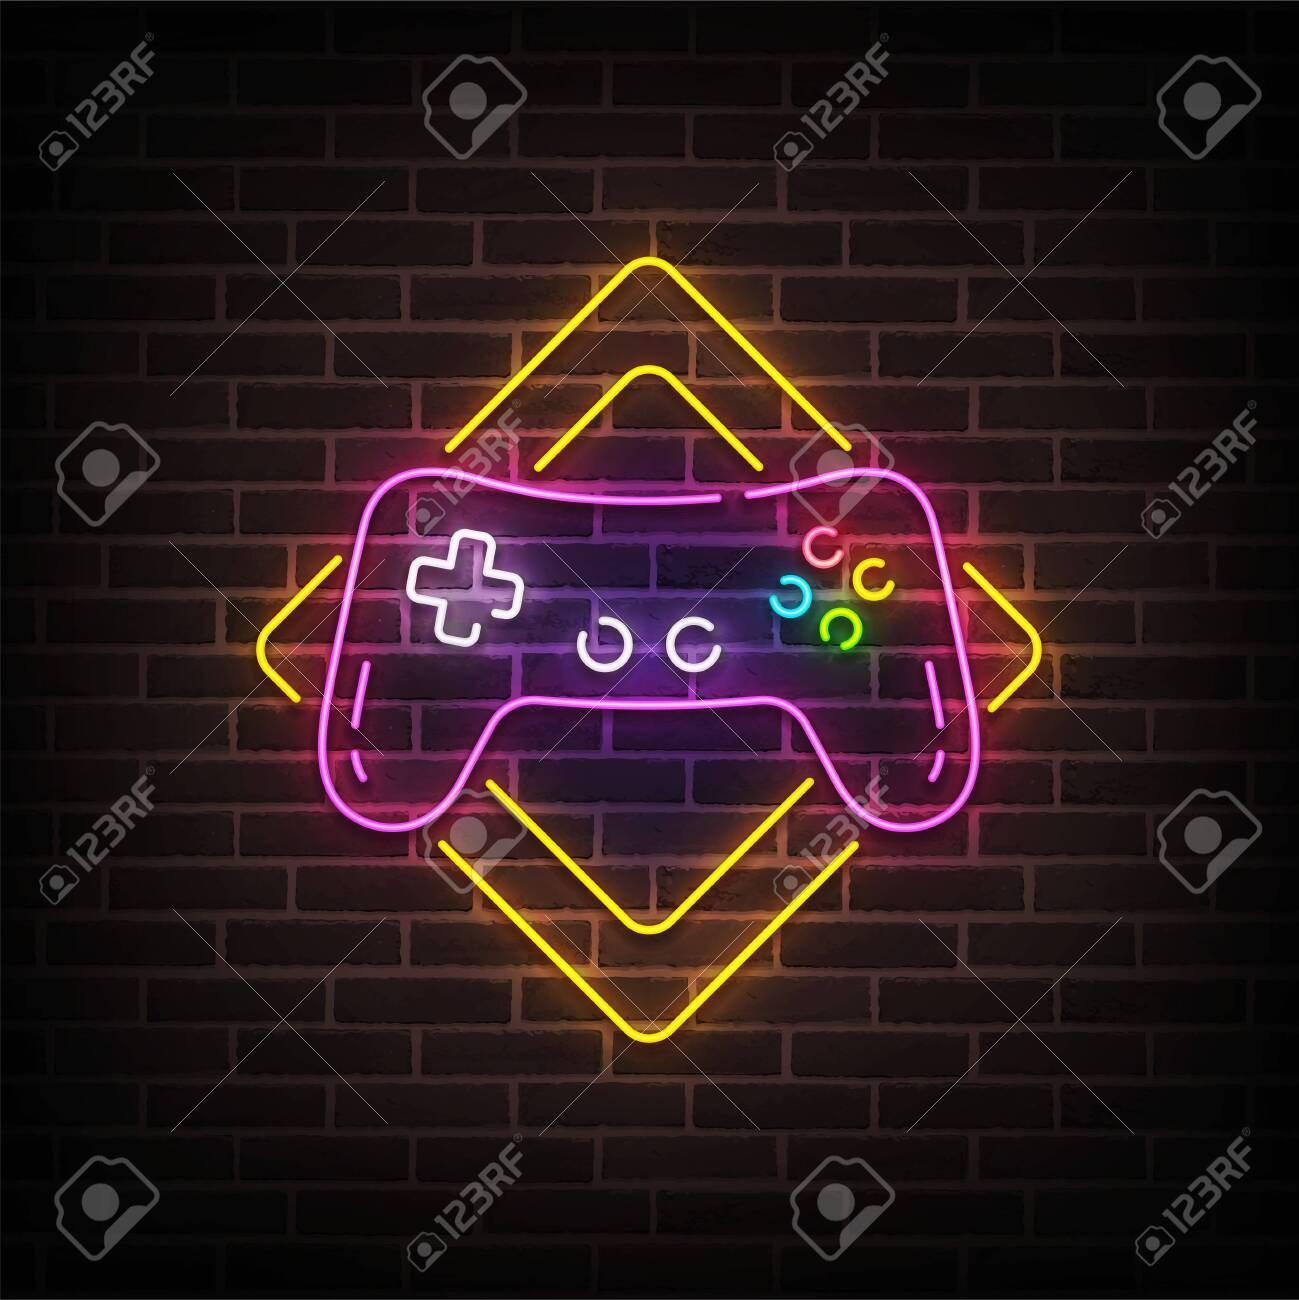 Game Zone Neon Sign Bright Signboard Light Banner Game Area Royalty Free Cliparts Vectors And Stock Illustration Image 133739146